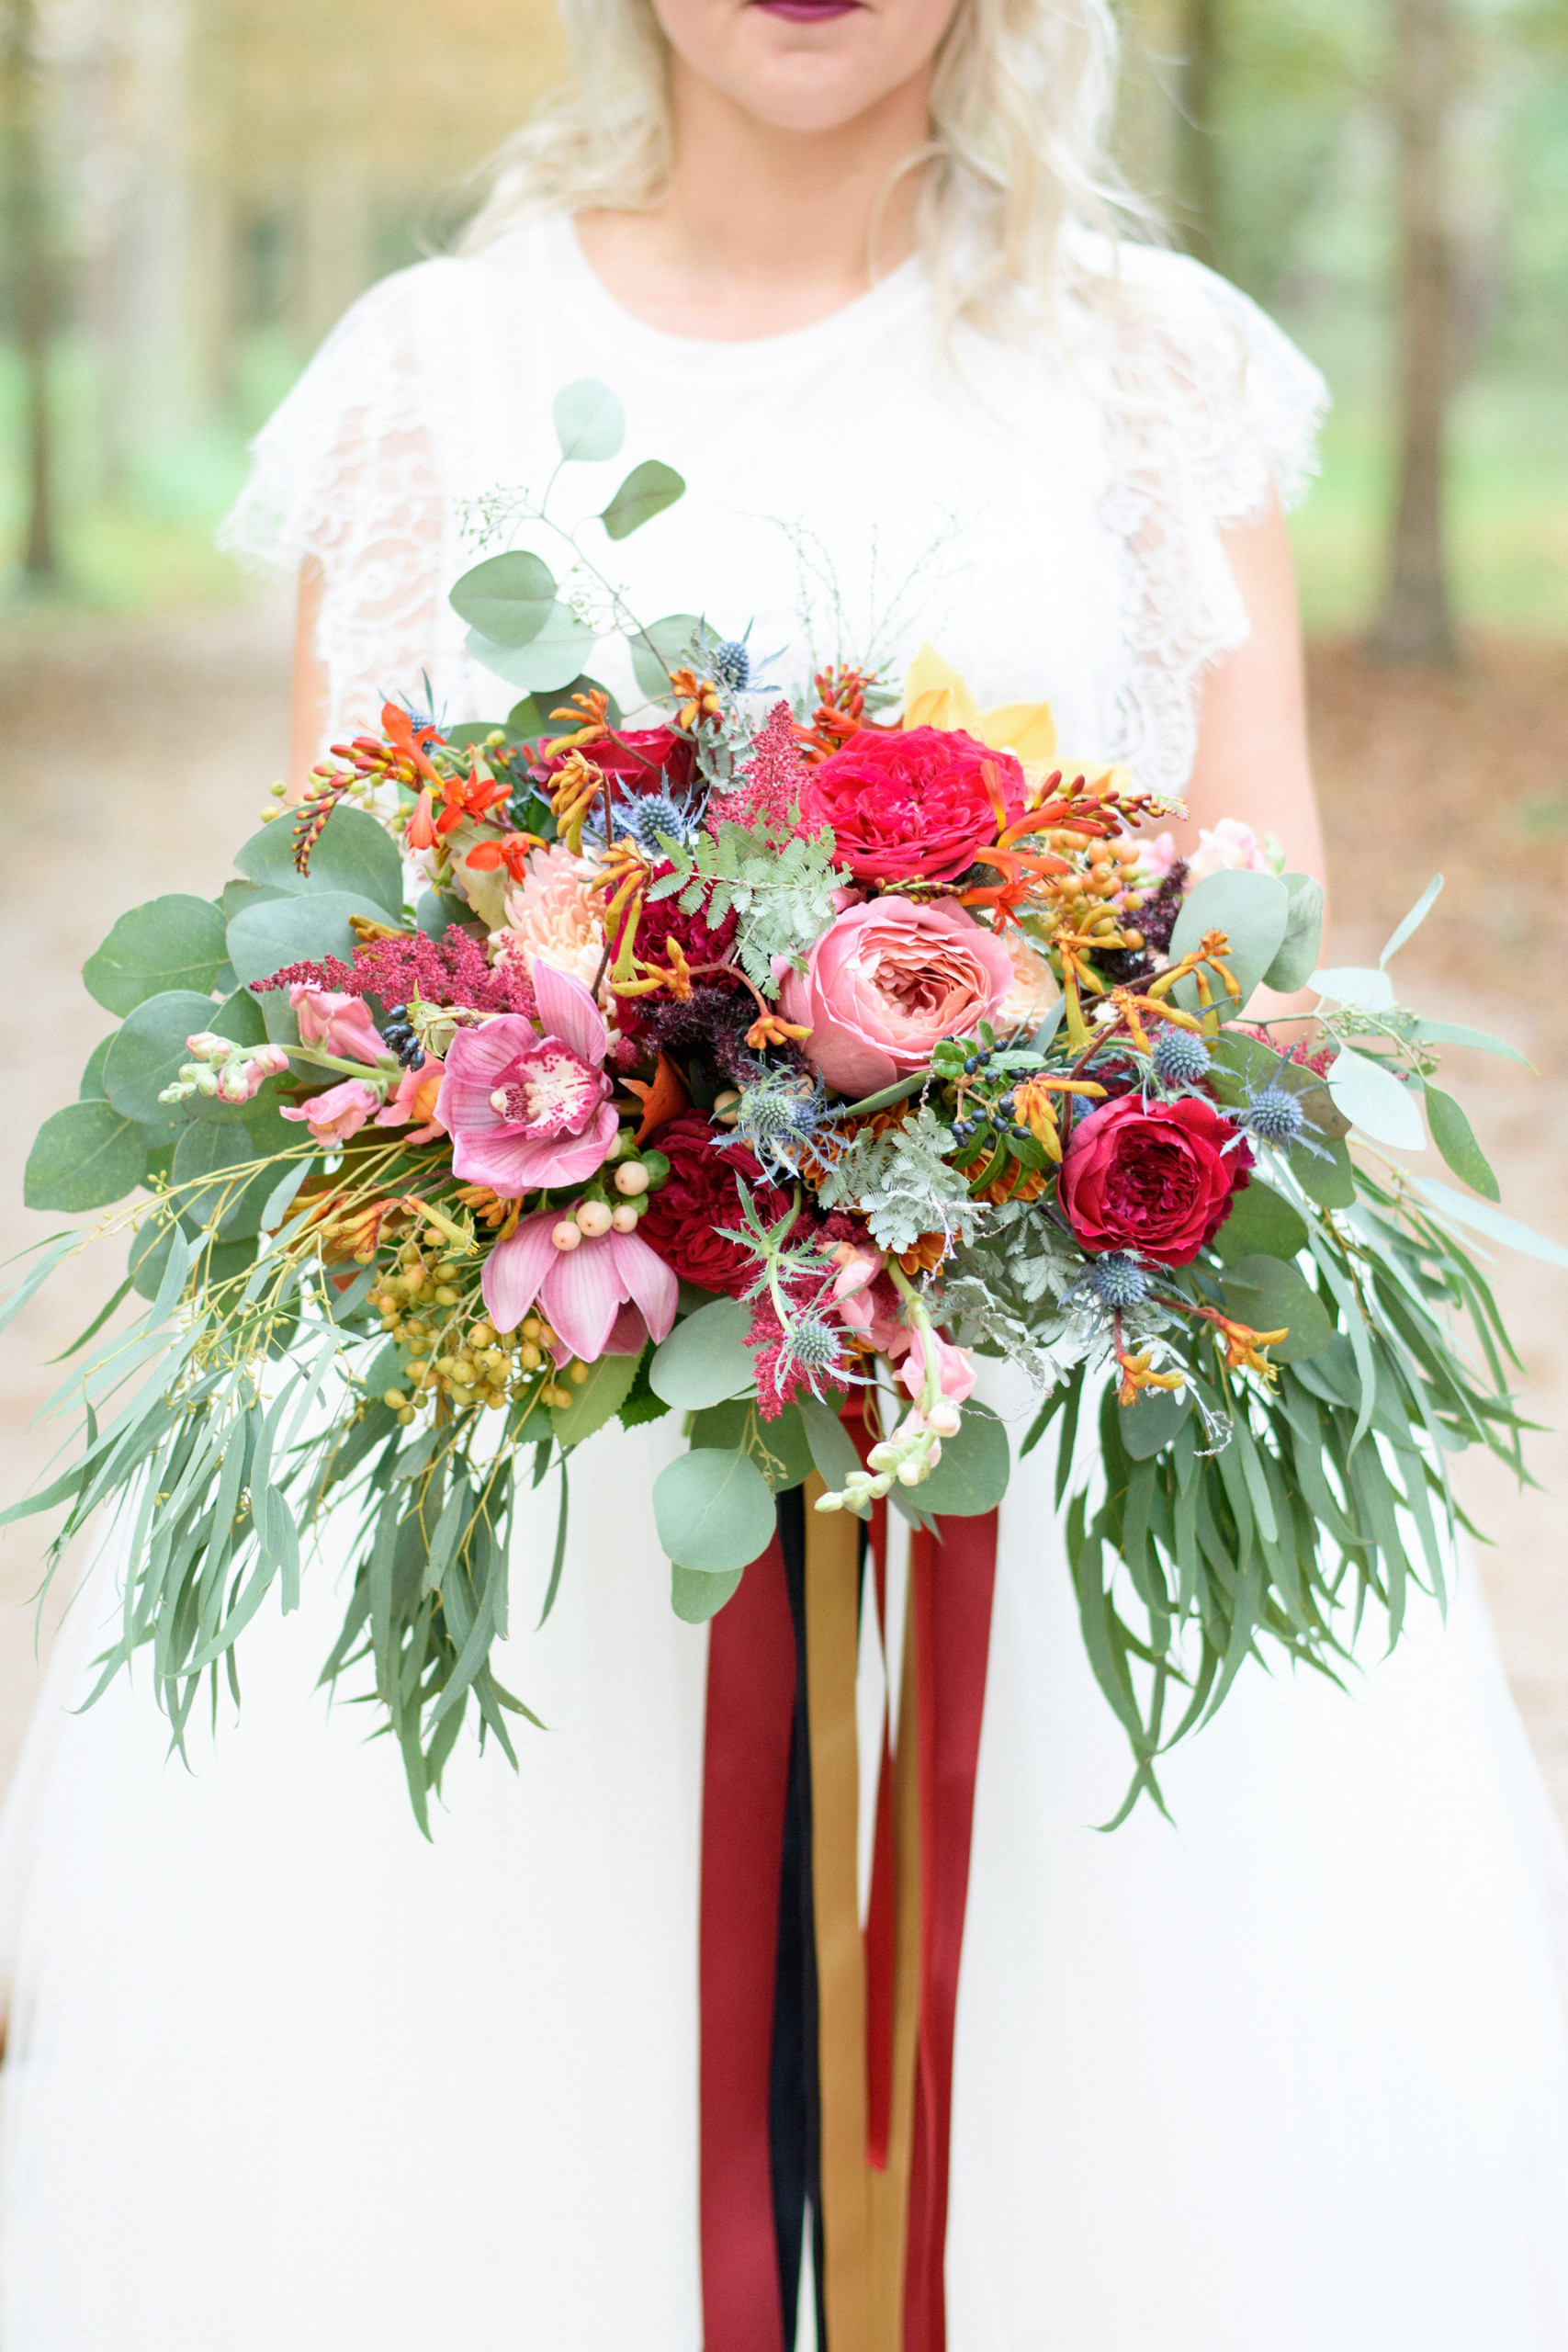 25 Swoon Worthy Wedding Bouquets With Roses Parfum Flower Company